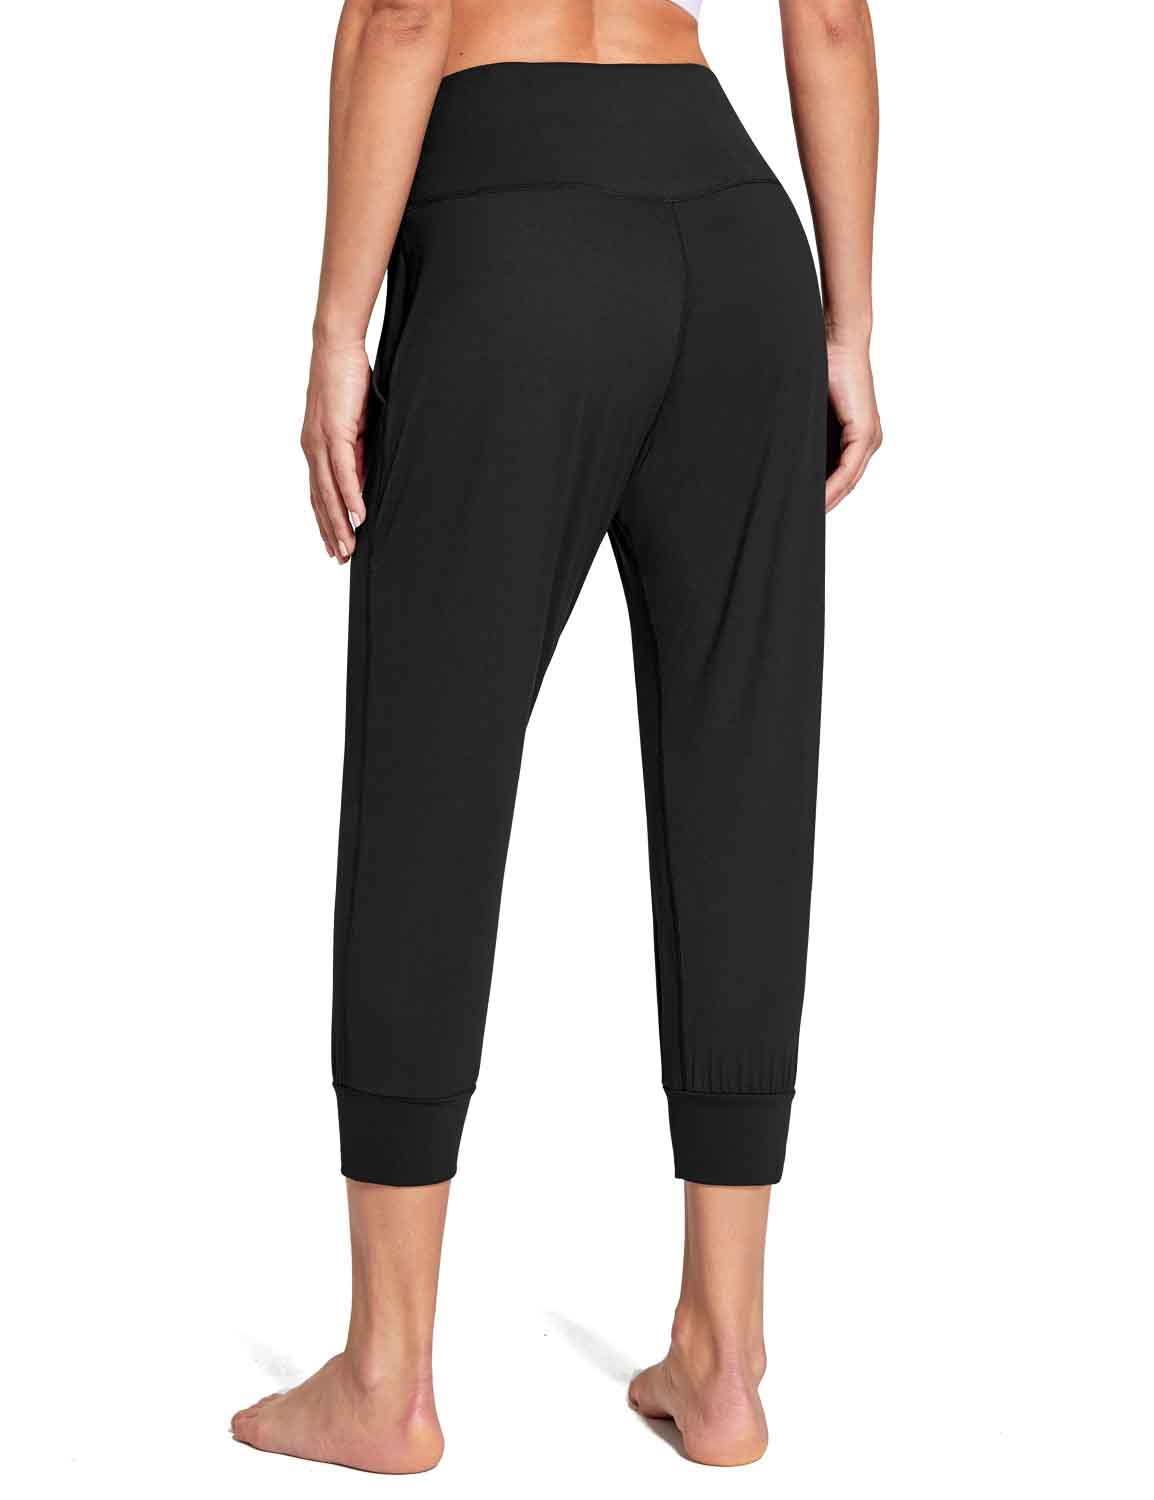 Baleaf Women's High Rise Soft Cropped Workout Pockets Joggers black back